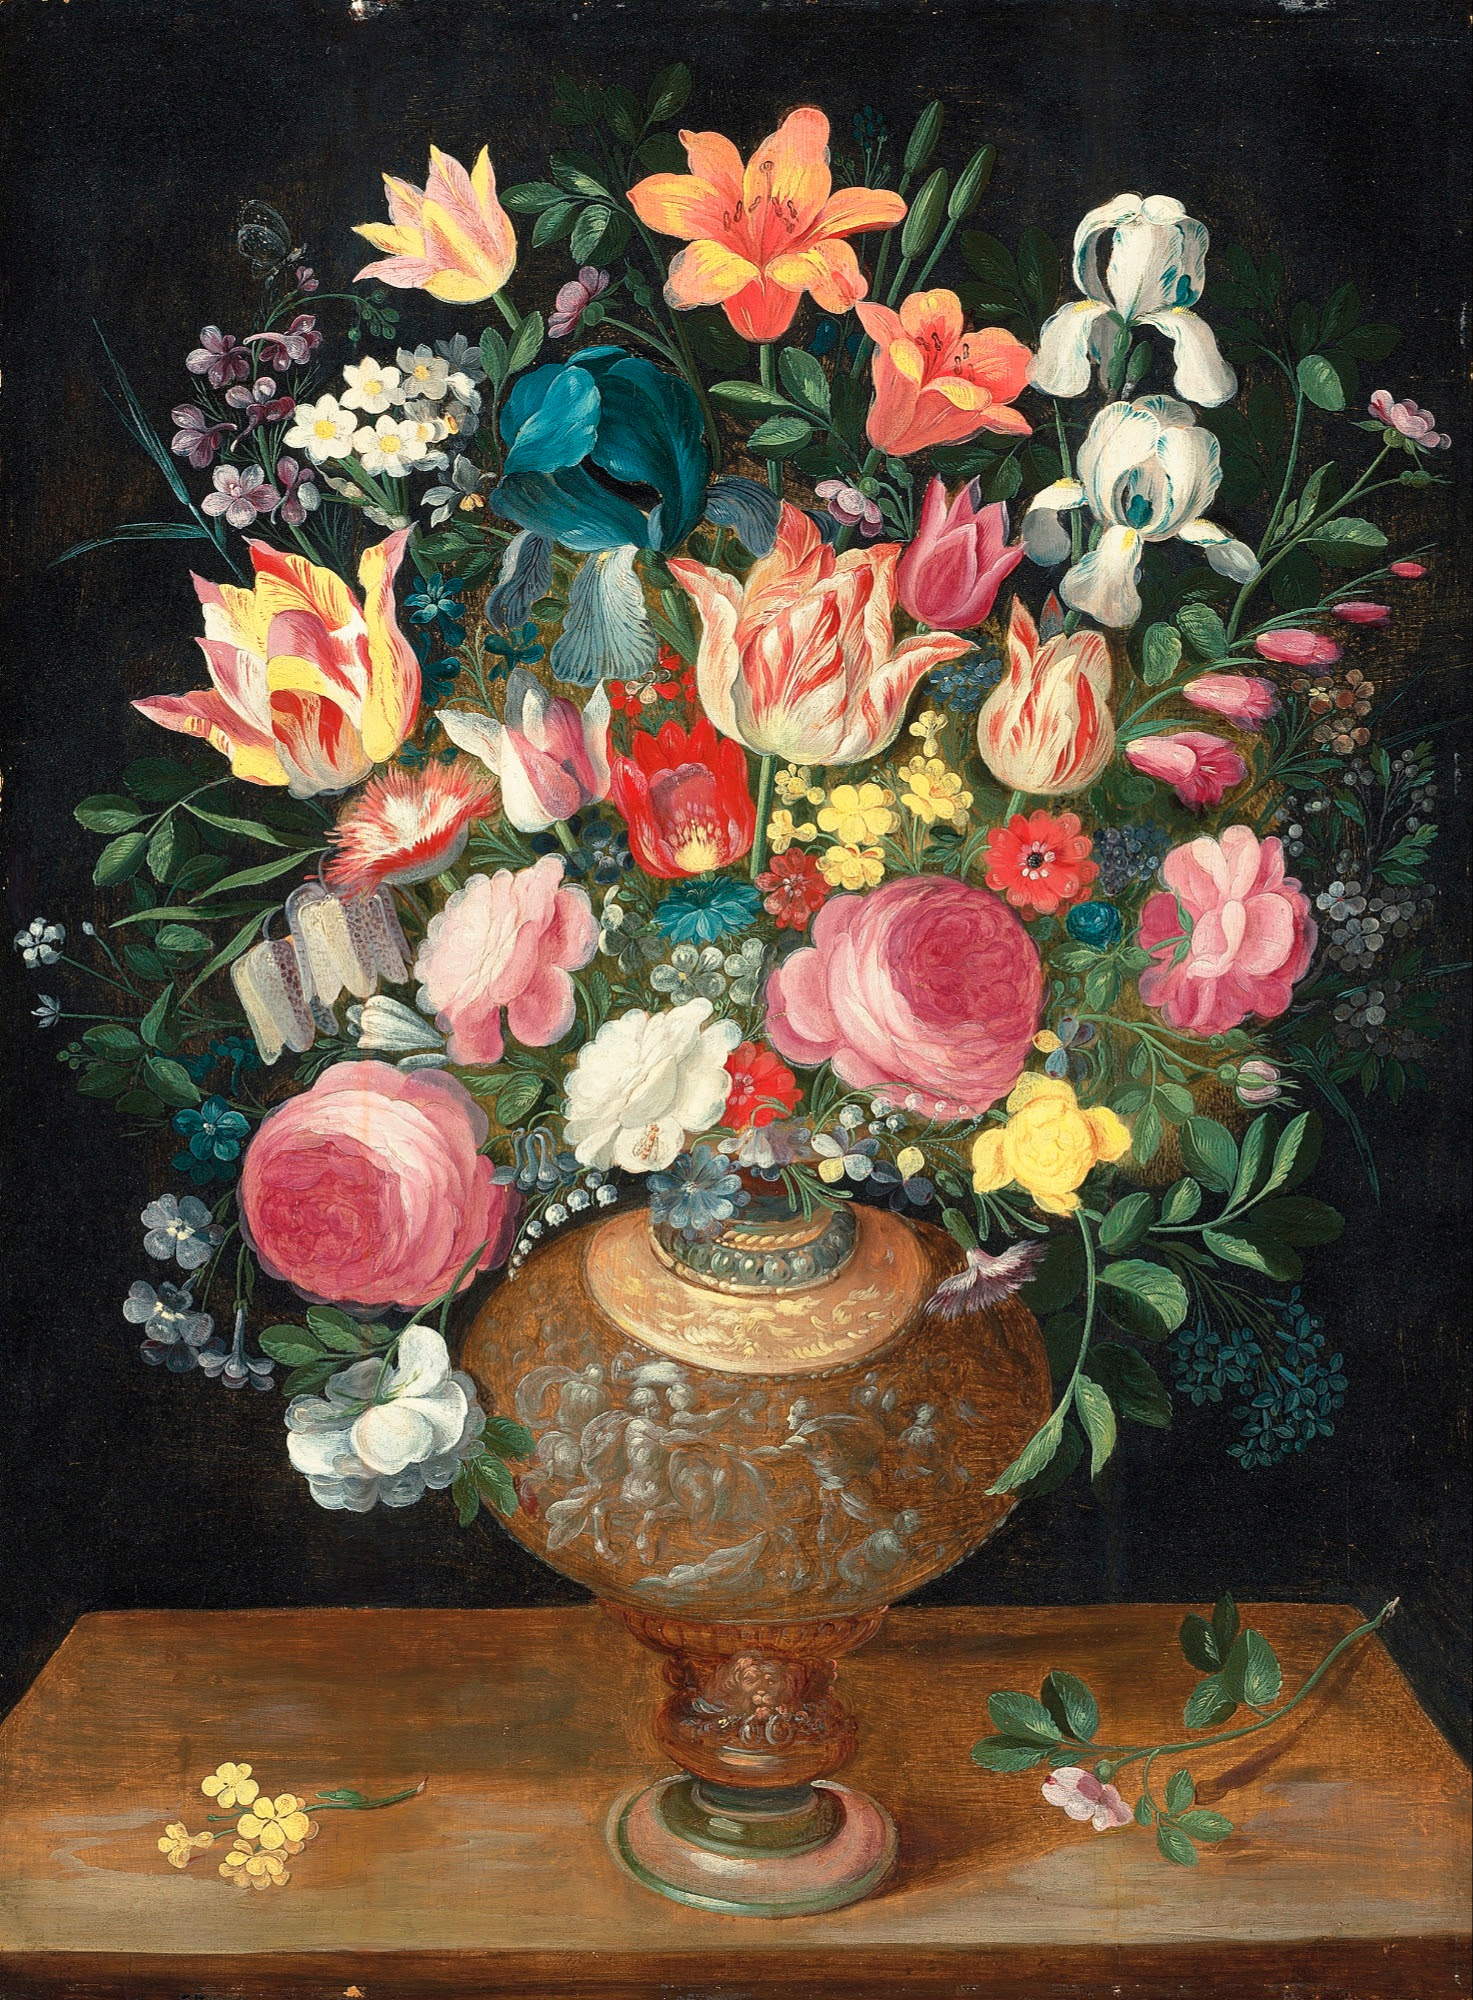 http://upload.wikimedia.org/wikipedia/commons/5/55/Andries_Daniels_%26_Frans_Francken_II_-_A_still_life_of_flowers_in_a_sculpted_vase.jpg